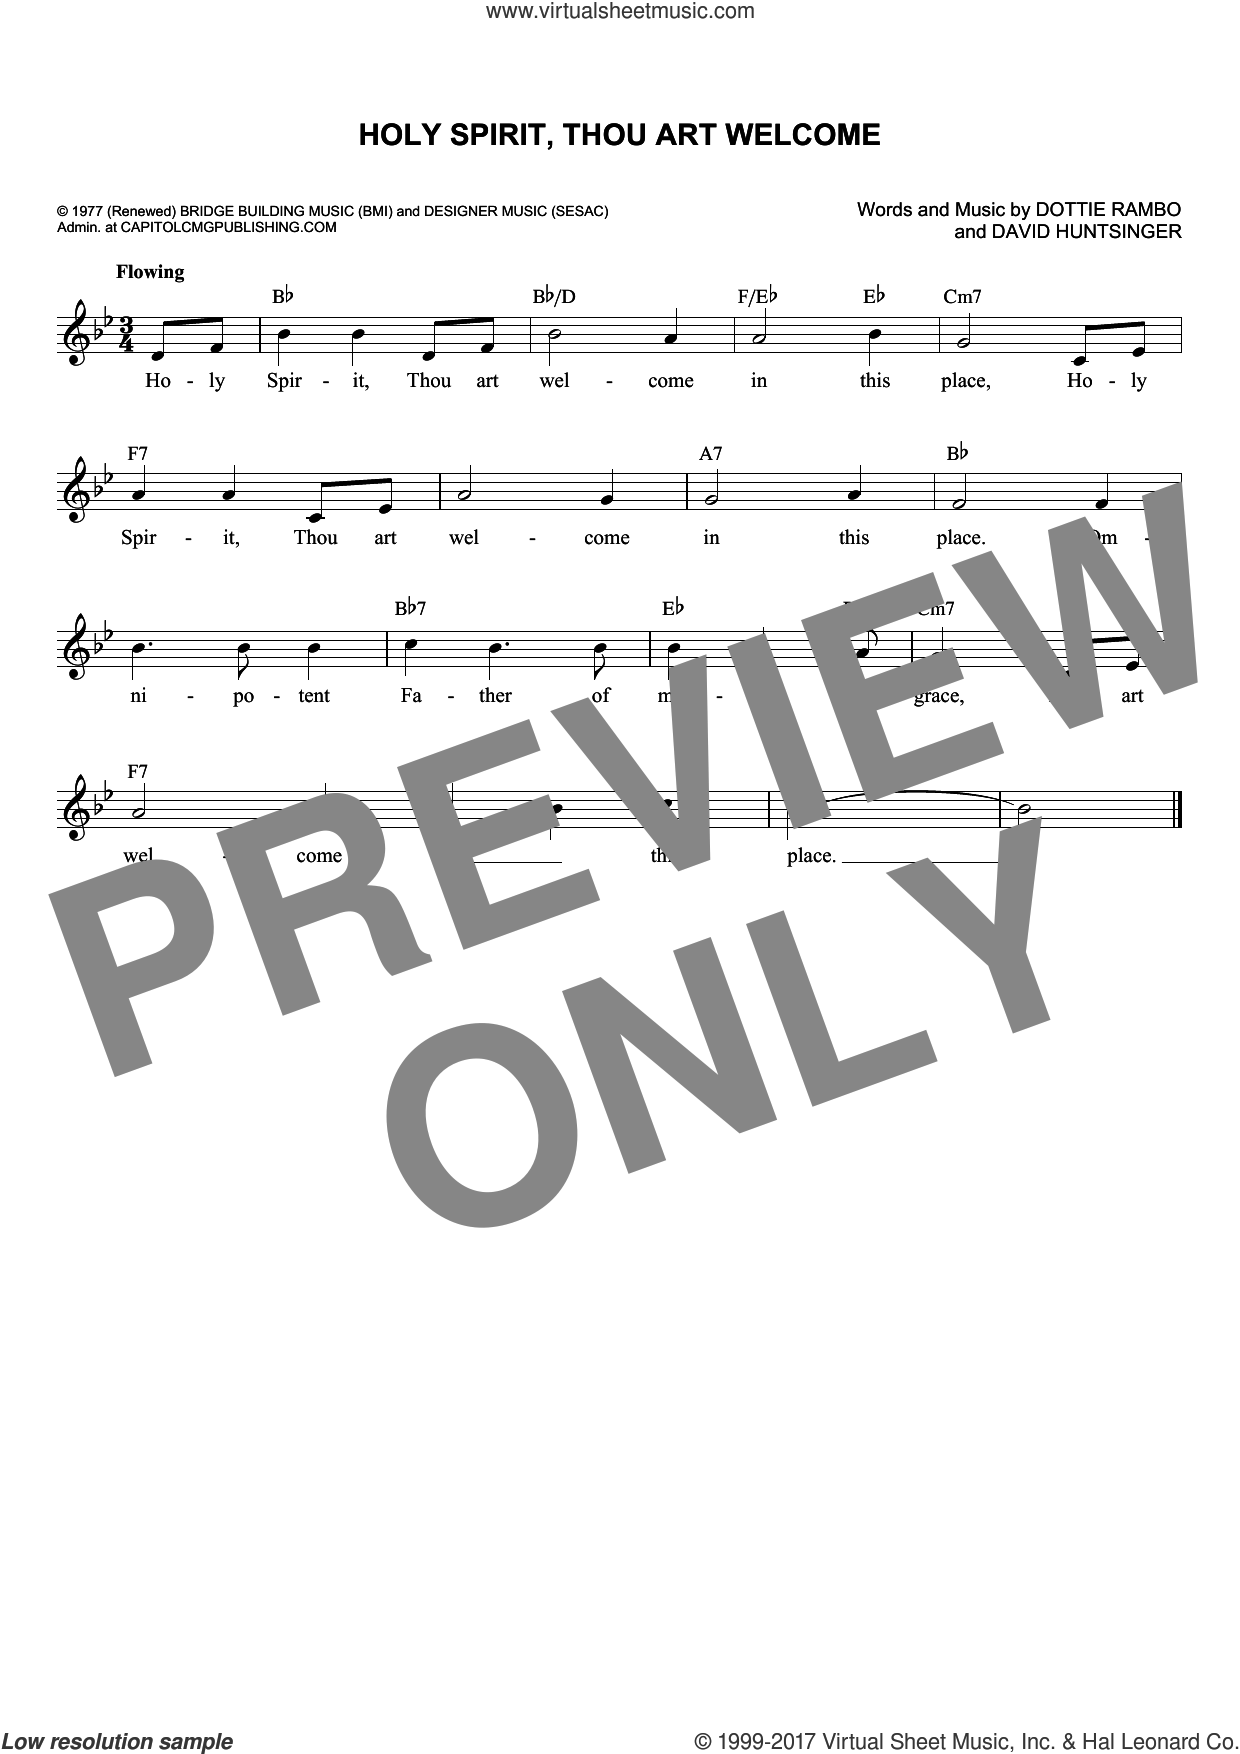 Holy Spirit, Thou Art Welcome sheet music for voice and other instruments (fake book) by David Huntsinger and Dottie Rambo, intermediate skill level